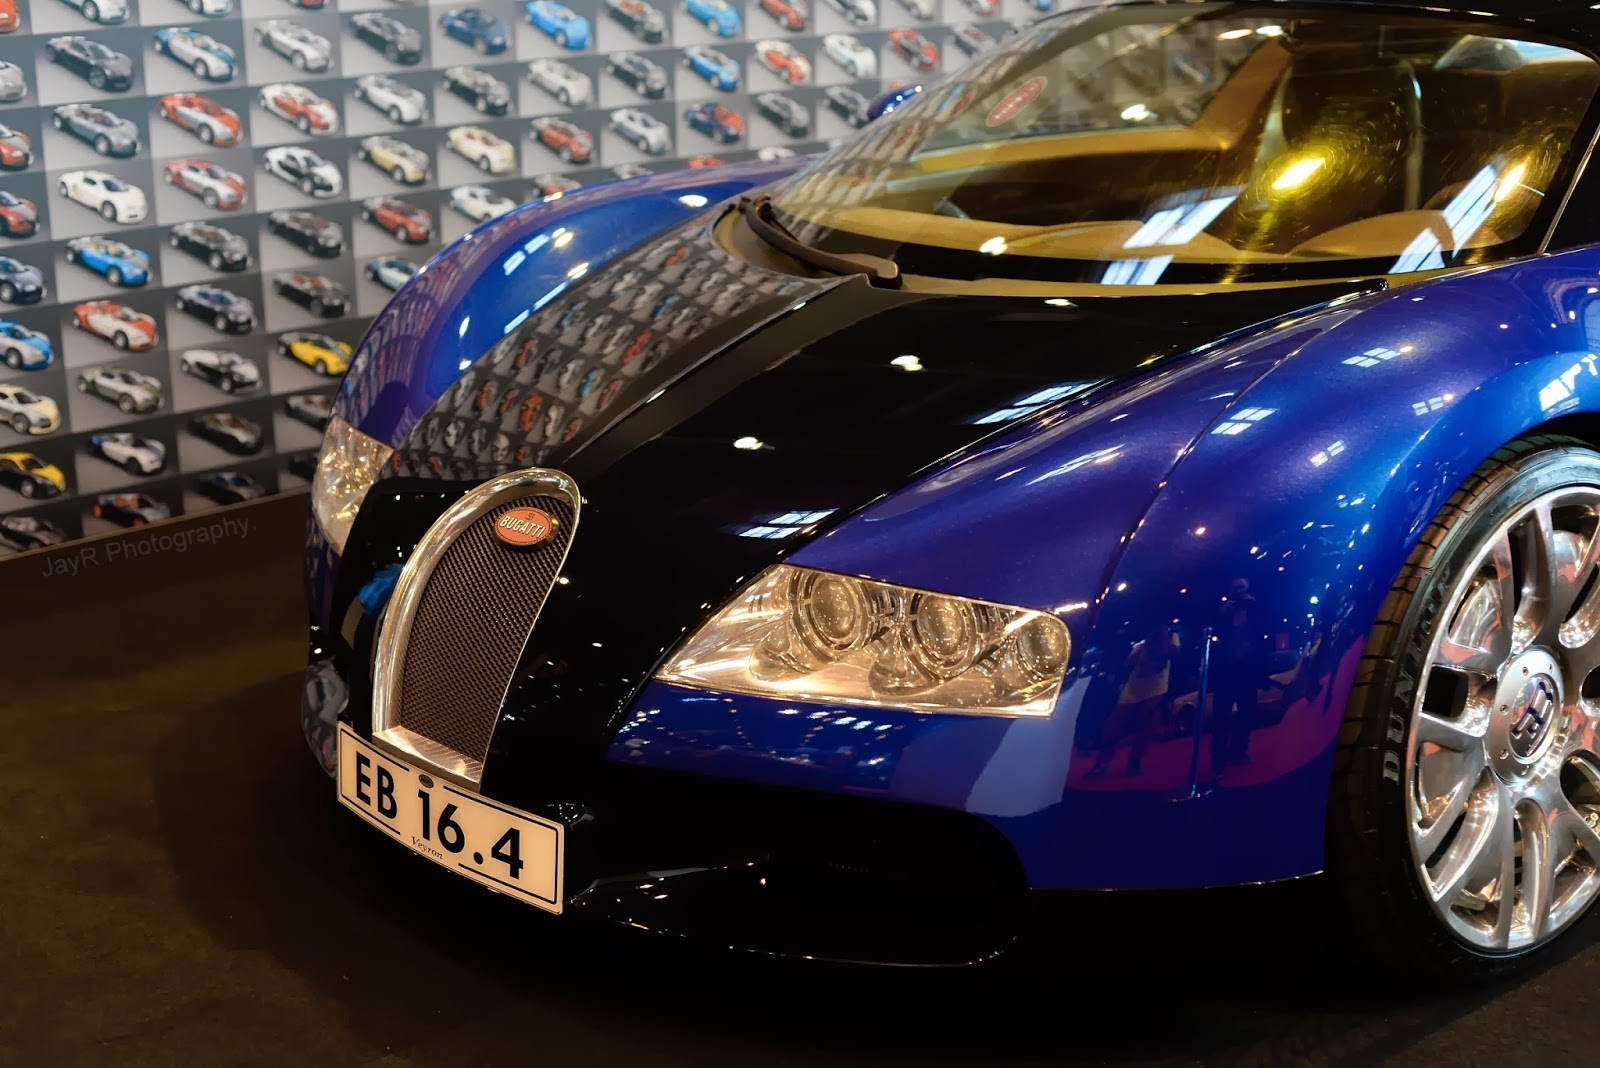 Bugatti Veyron 16.4 Concept: Paris Again, After 13 Years.